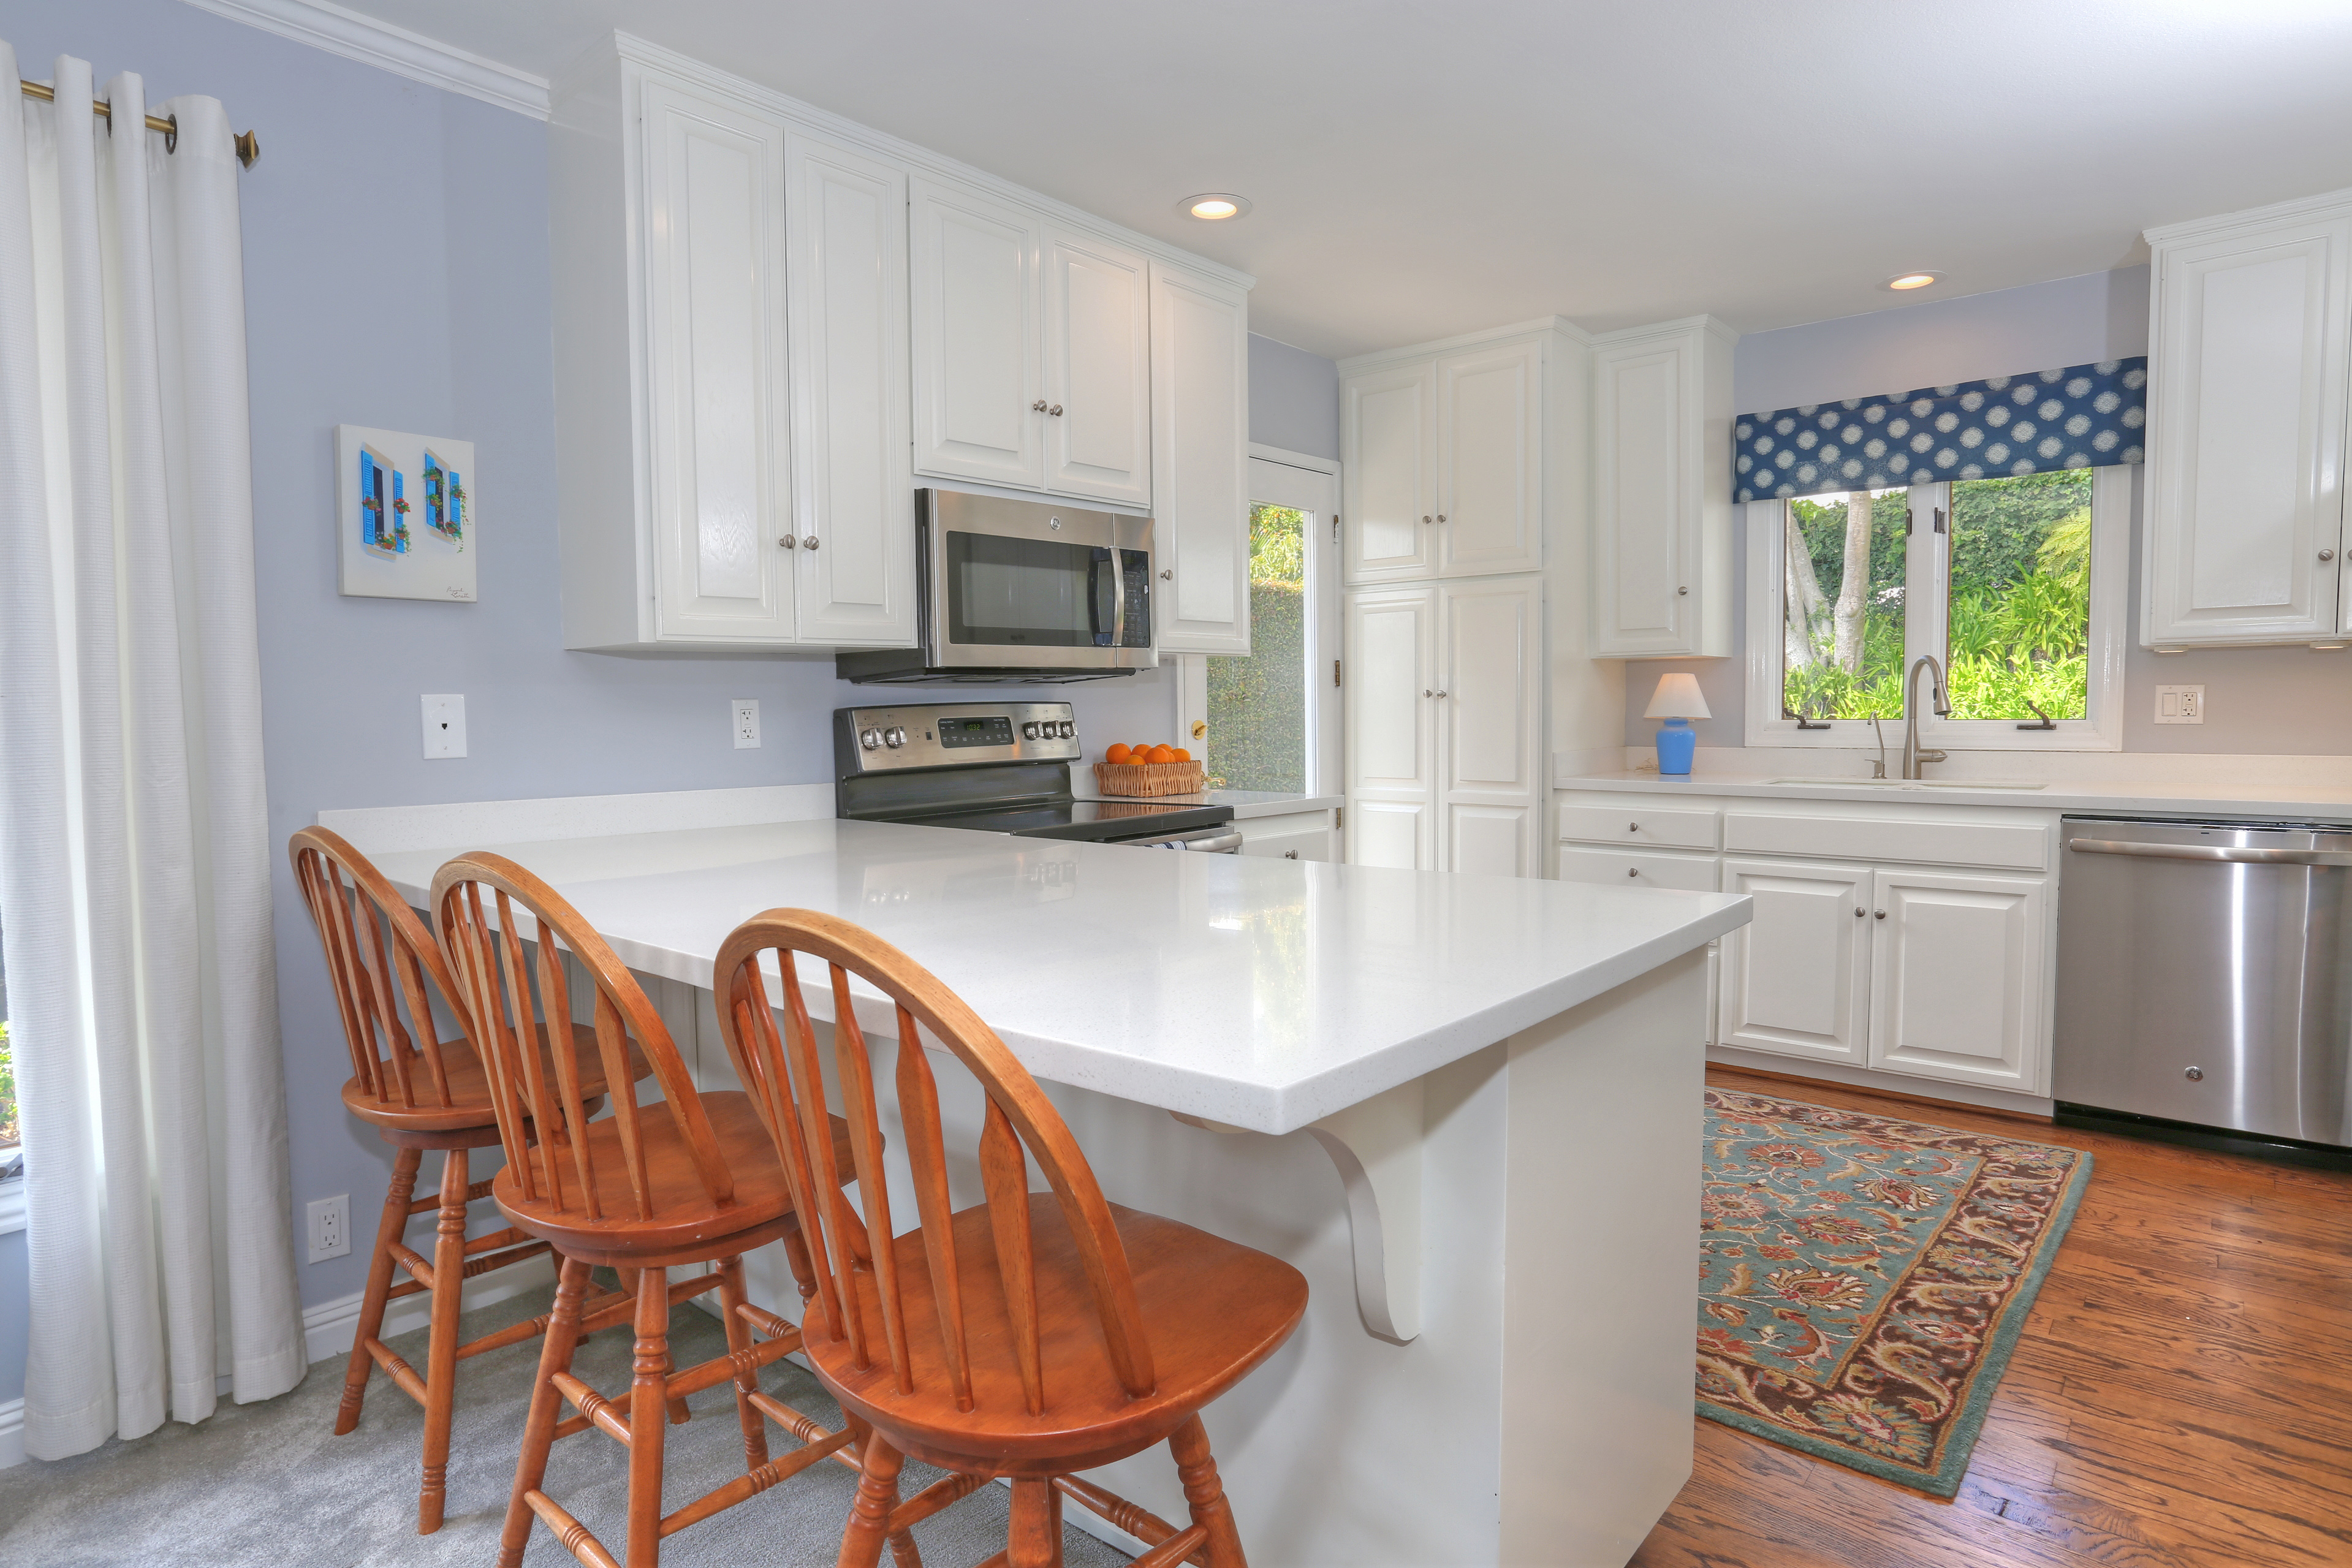 3739 Lincolnwood Dr - Kitchen & Counter